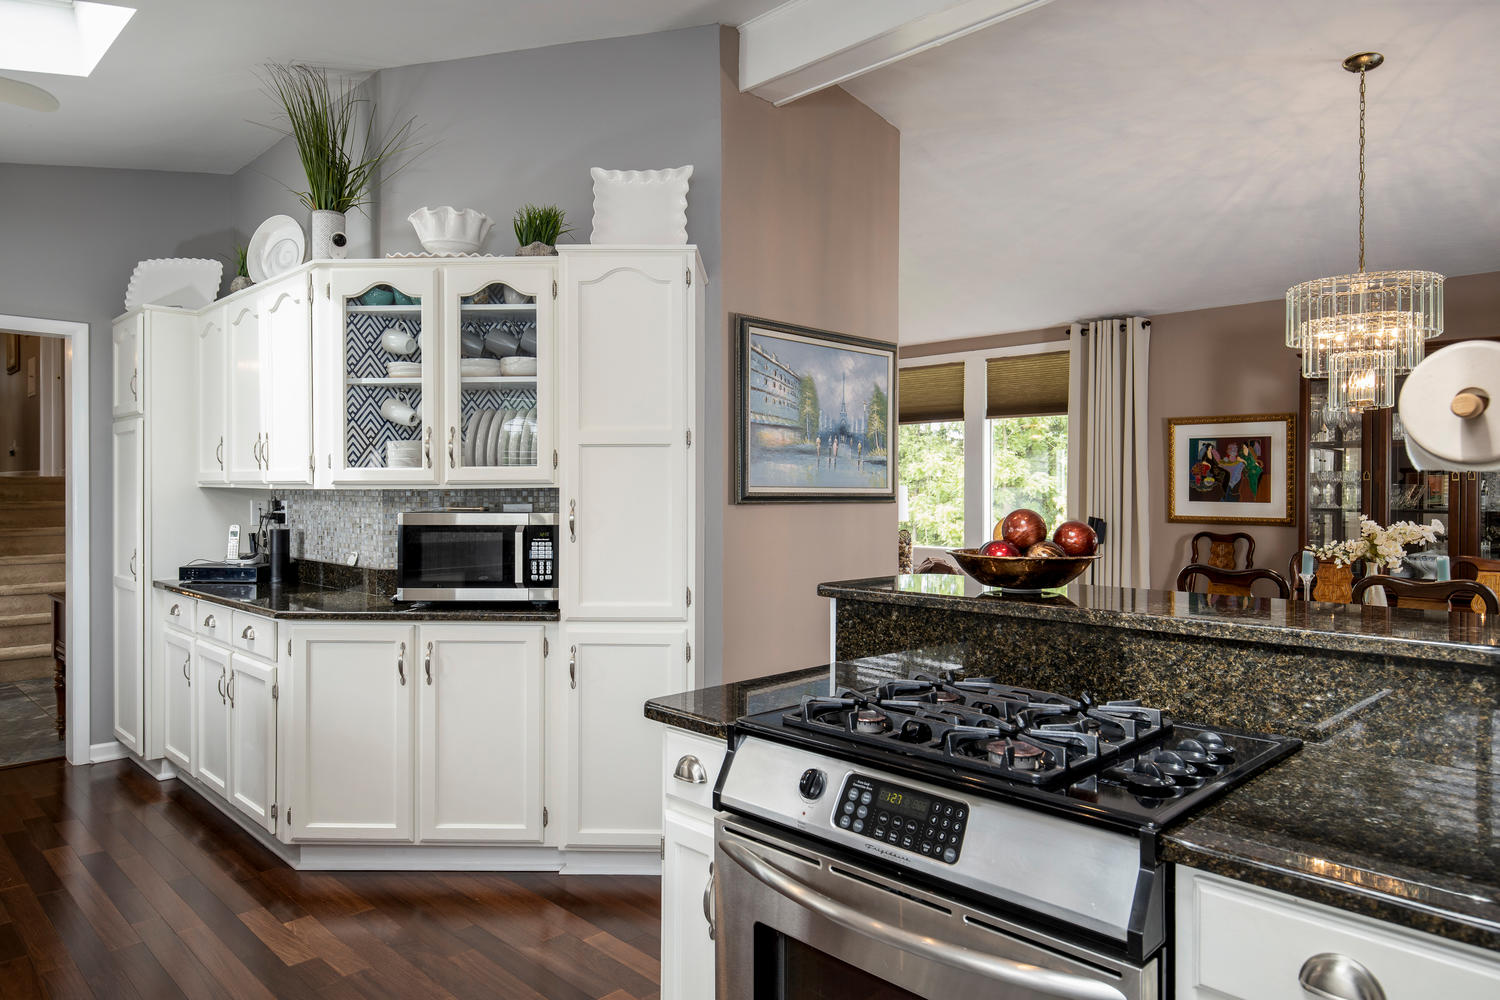 5258 Armor Duells Rd Orchard-large-011-017-Kitchen-1500×1000-72dpi